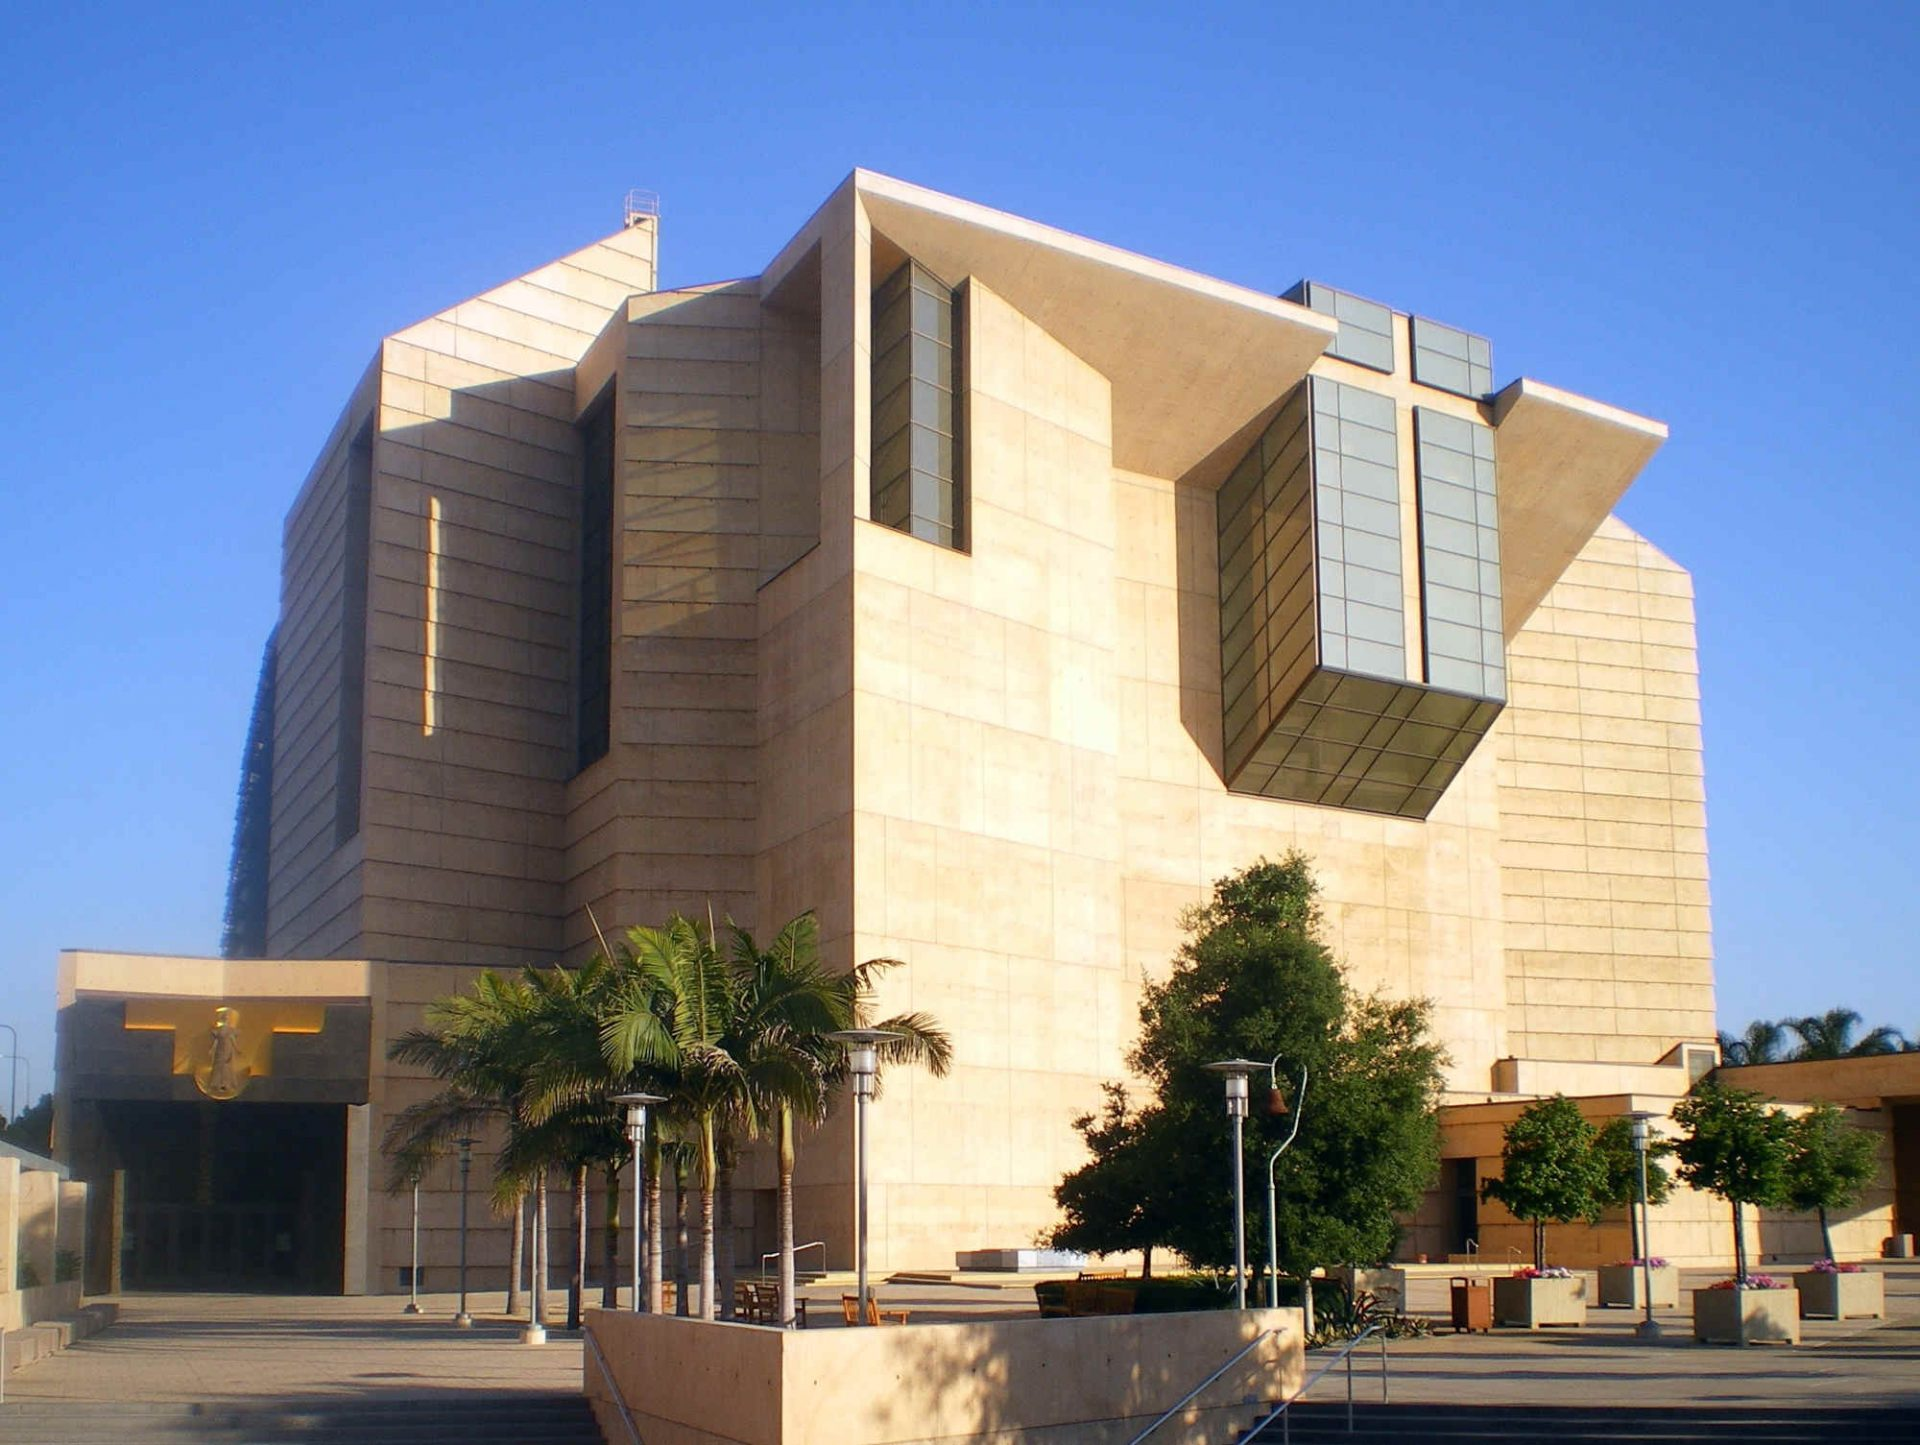 Kathedrale, Los Angeles, Rafael Moneo